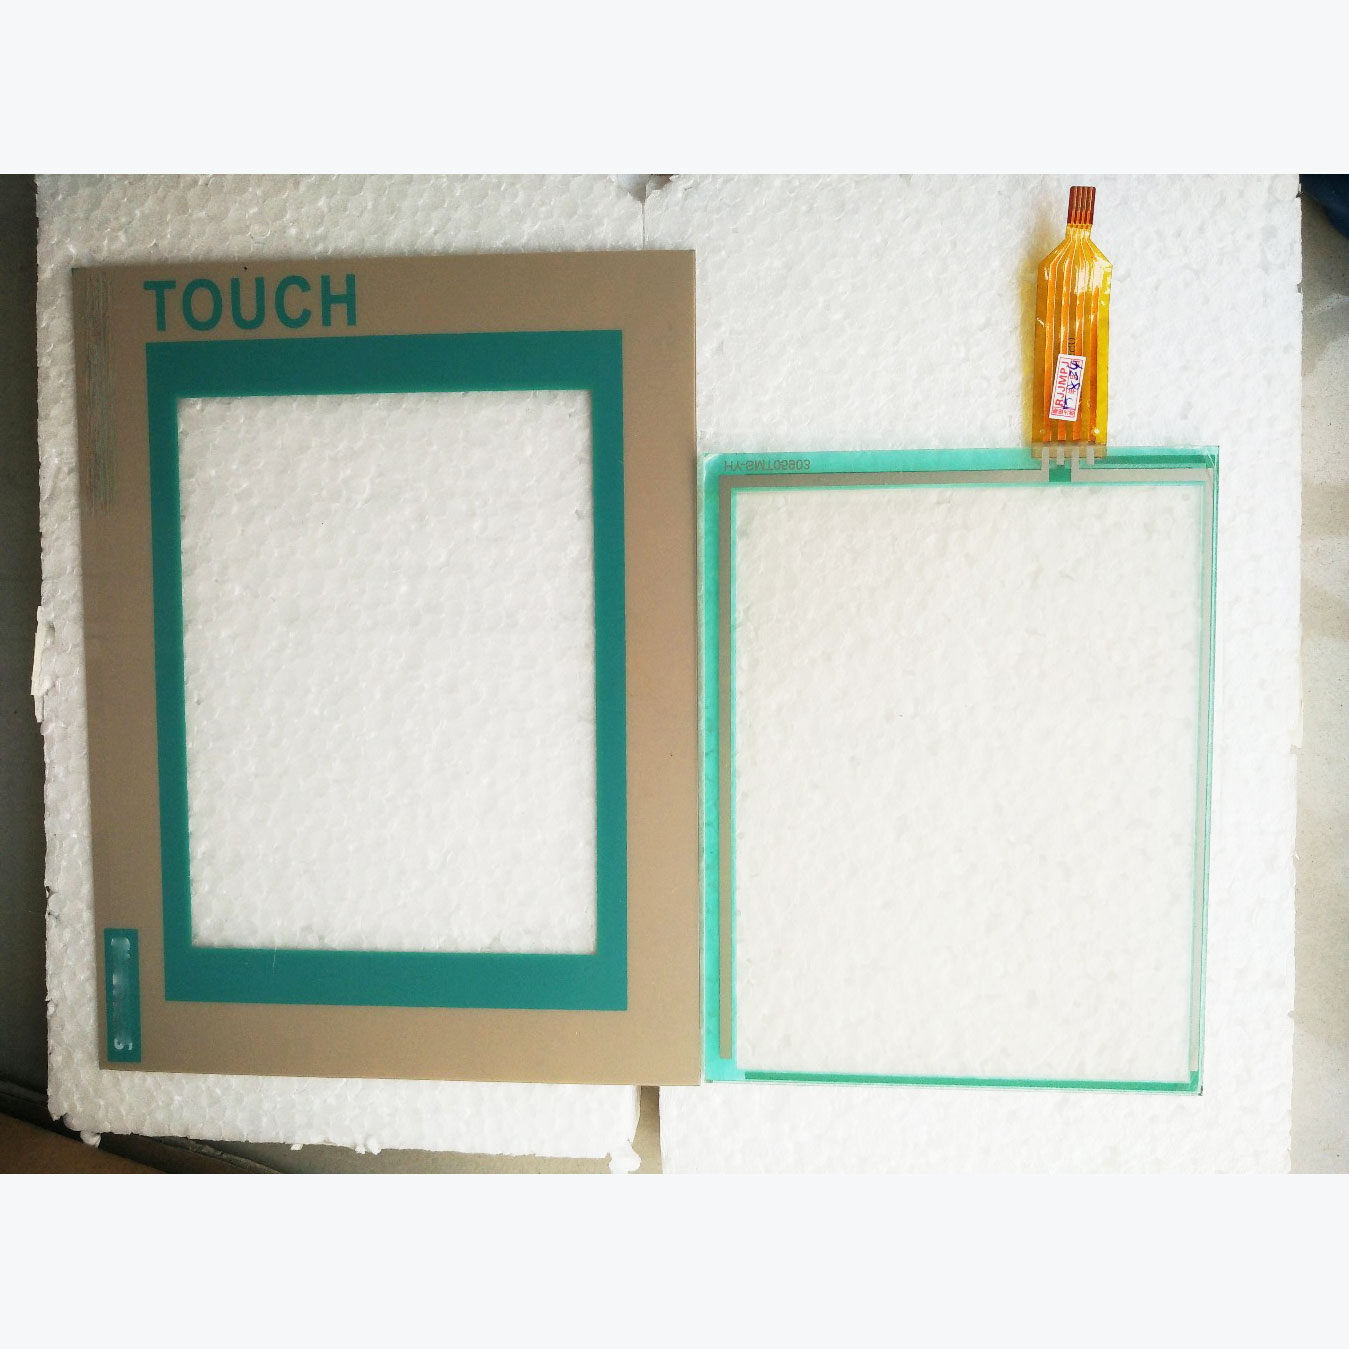 6AV6545-0BA15-2AX0,6AV6 545-0BA15-2AX0 Touch glass panel+protective film for Siemens TP170A